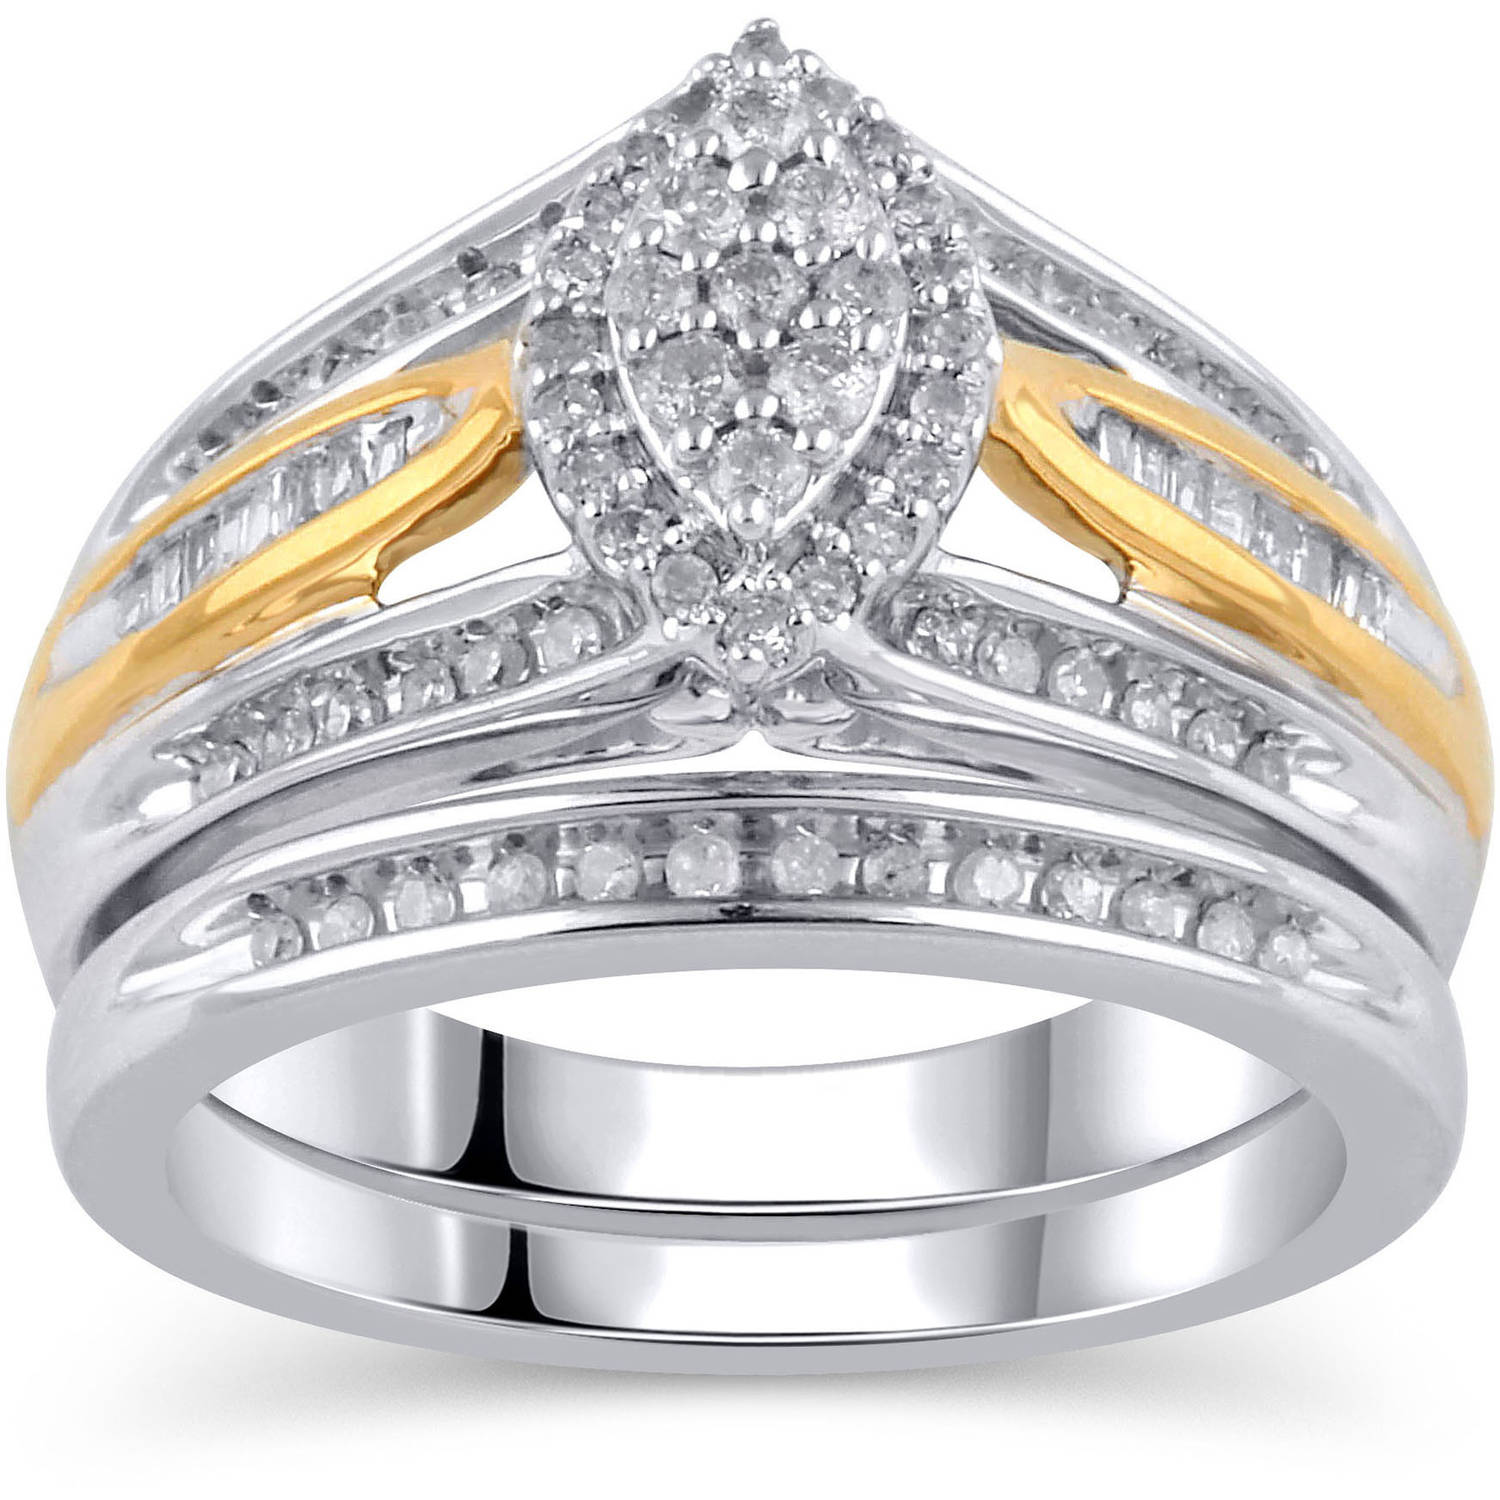 Used Wedding Ring Sets For Sale synrgyus